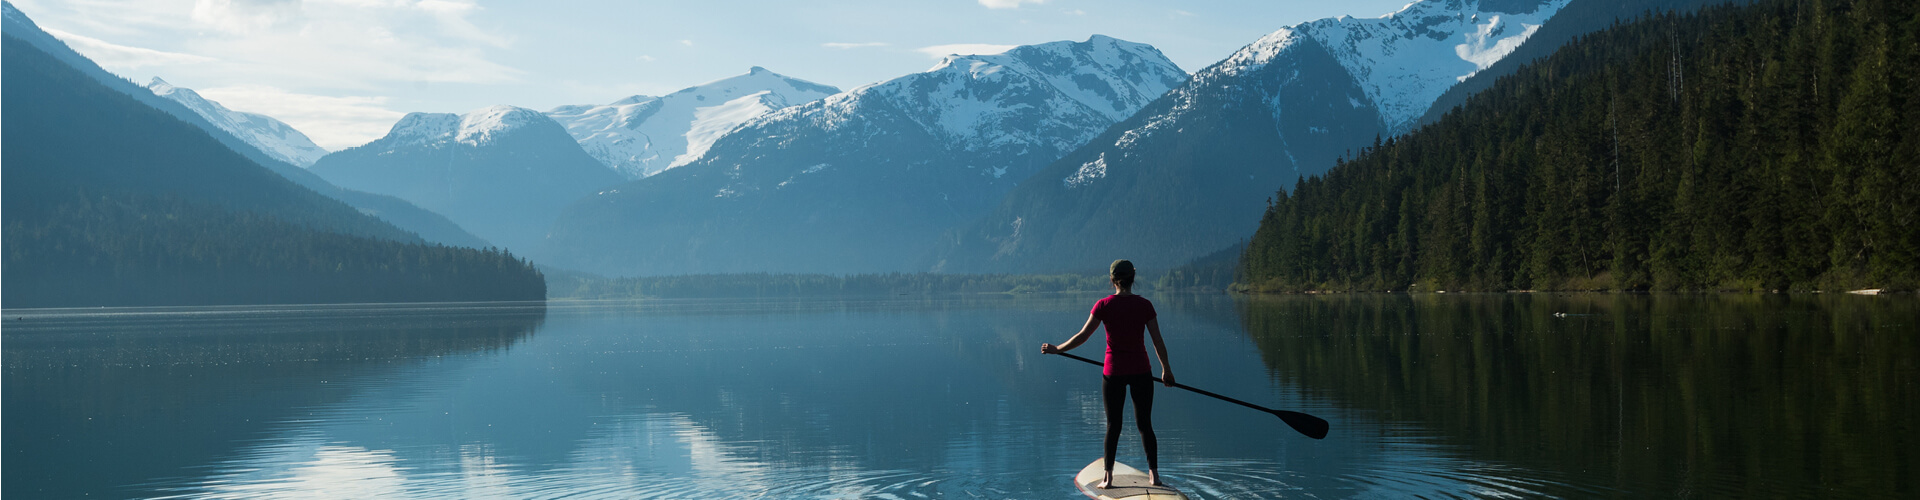 Woman standing on a paddleboard in the lake next to the mountains